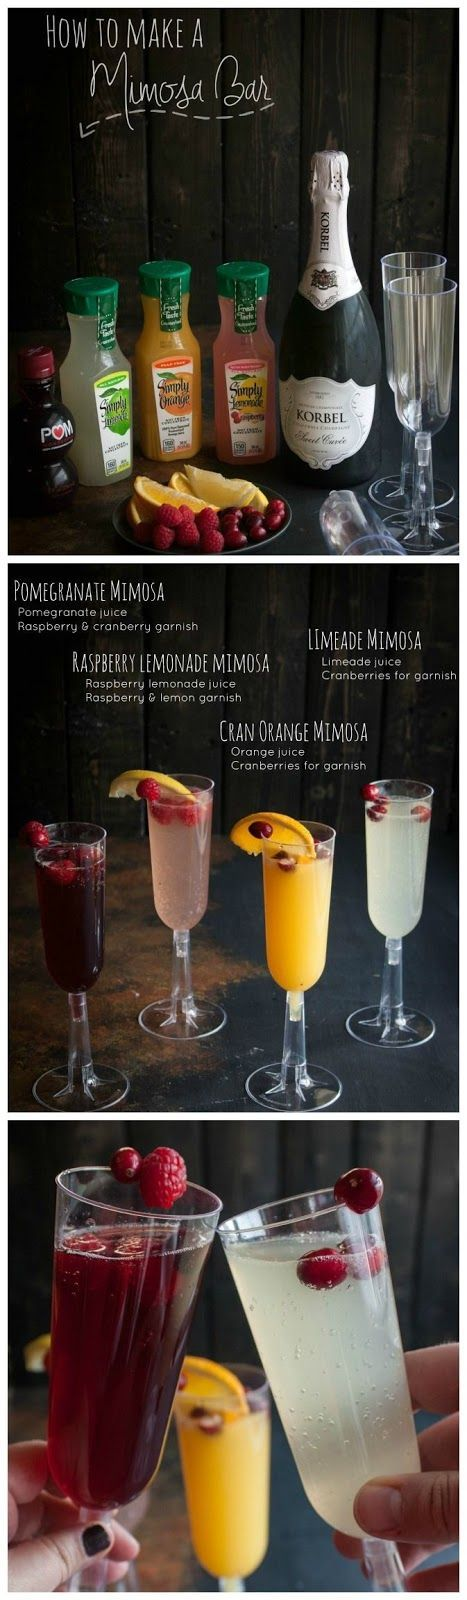 How to make a mimosa bar.  {wineglasswriter.com/}